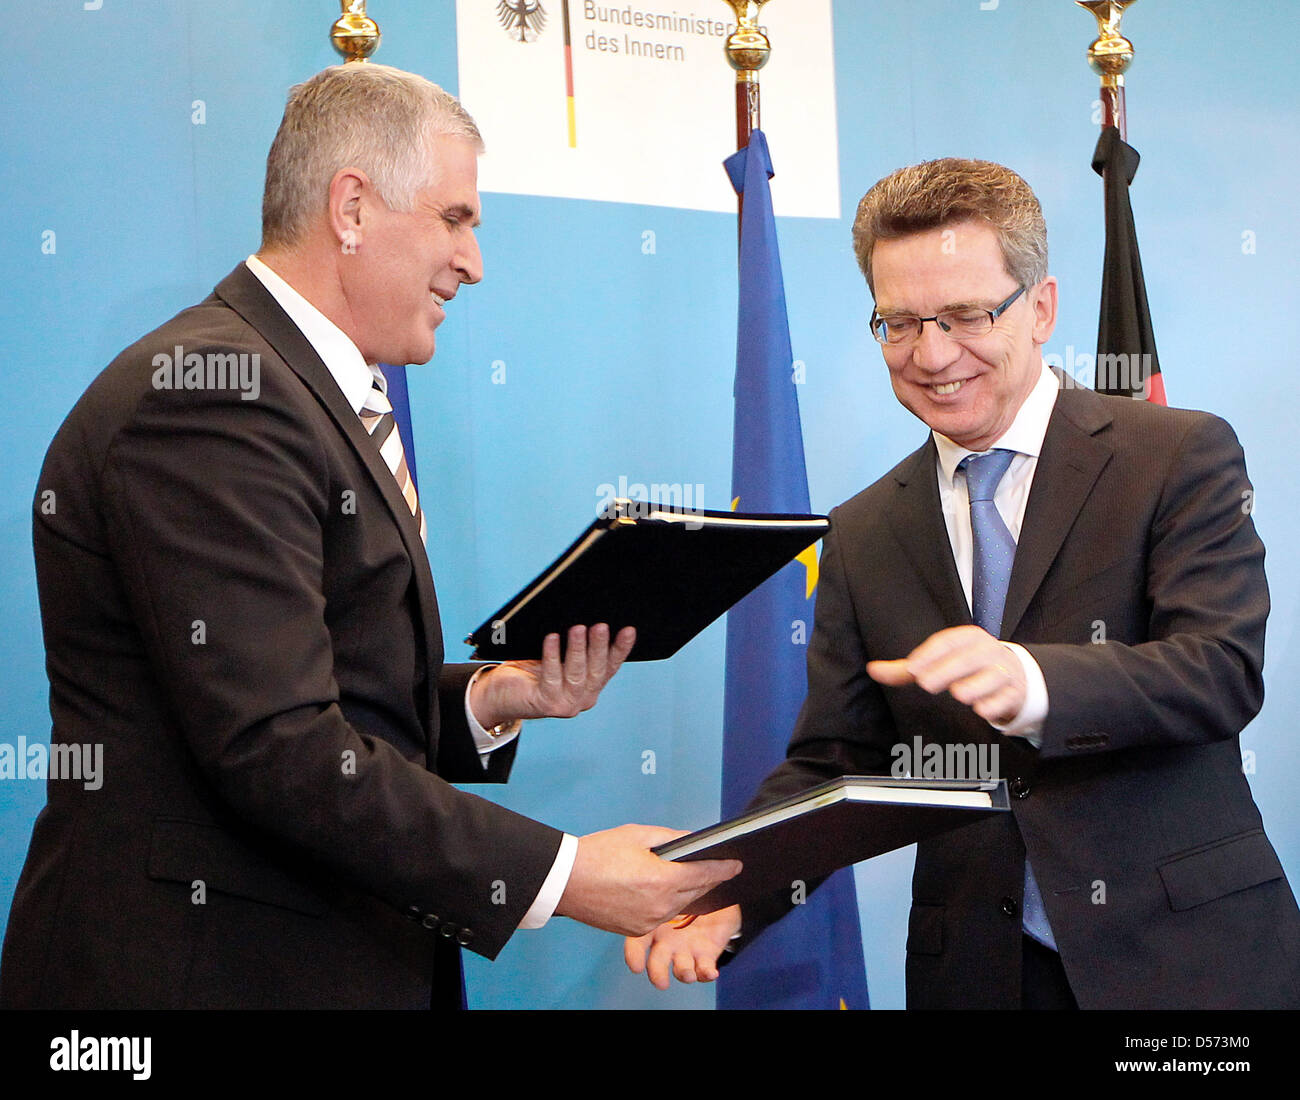 Kosovo's new Interiour Minister Bayram Rexhepi (L) and his German counterpart Thomas de Maiziere sign a readmission - Stock Image